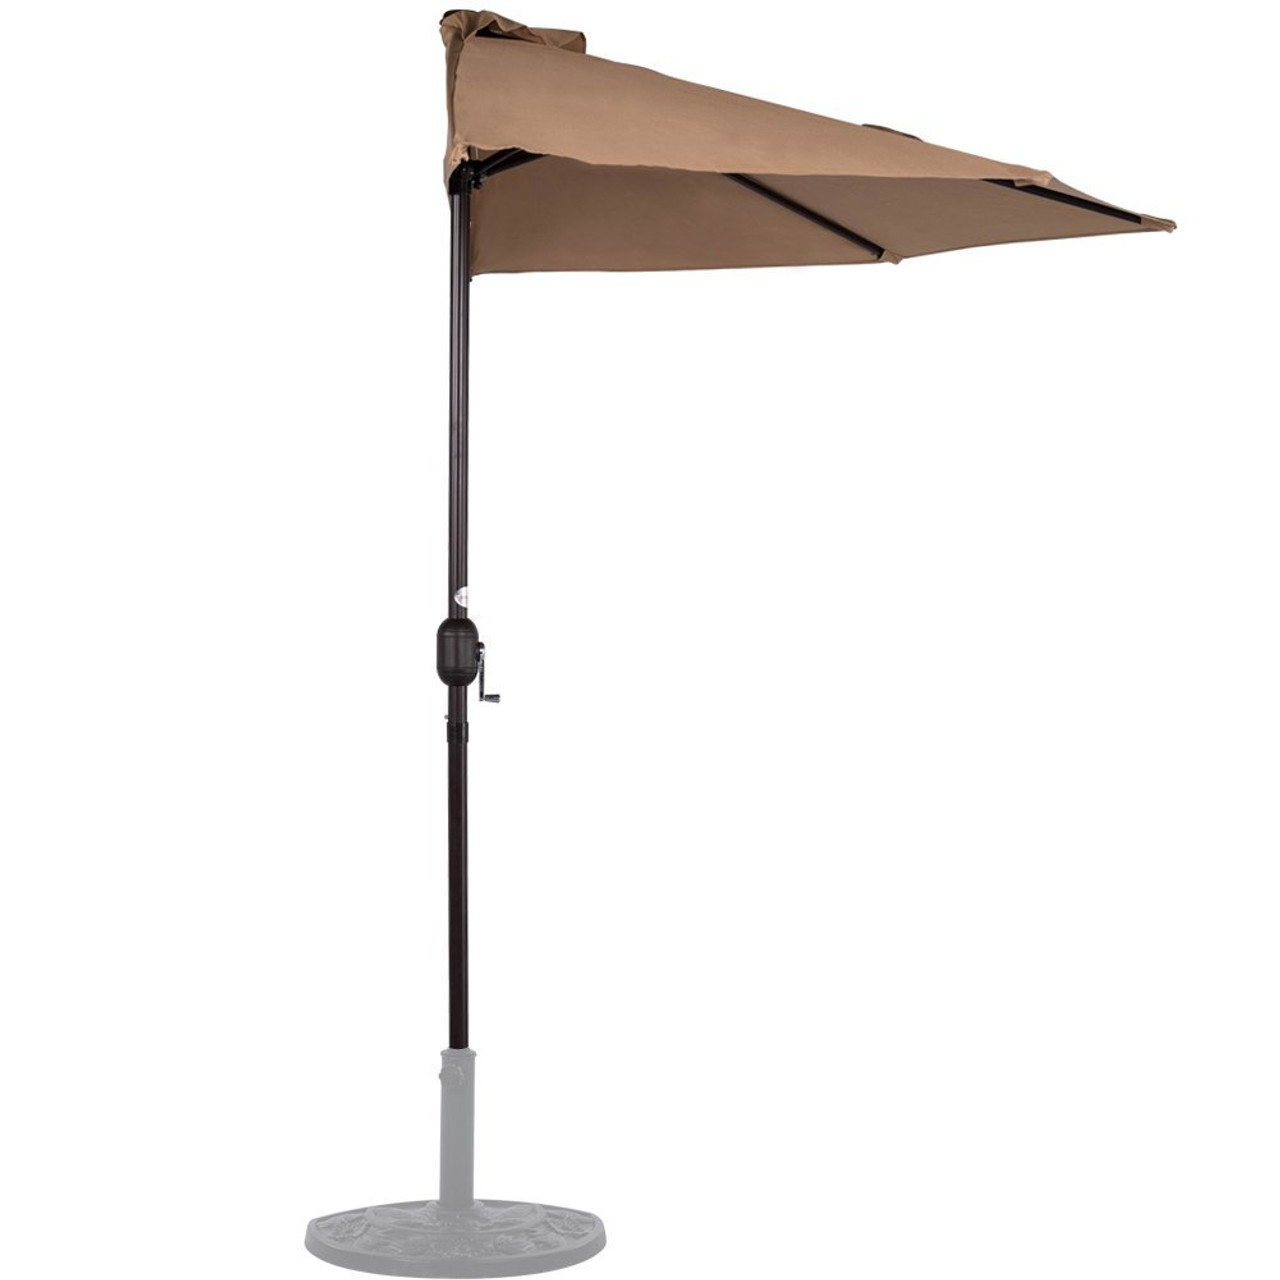 over by half patio walmart this hop score umbrella in to you pure only com on blue round garden where regularly for can just